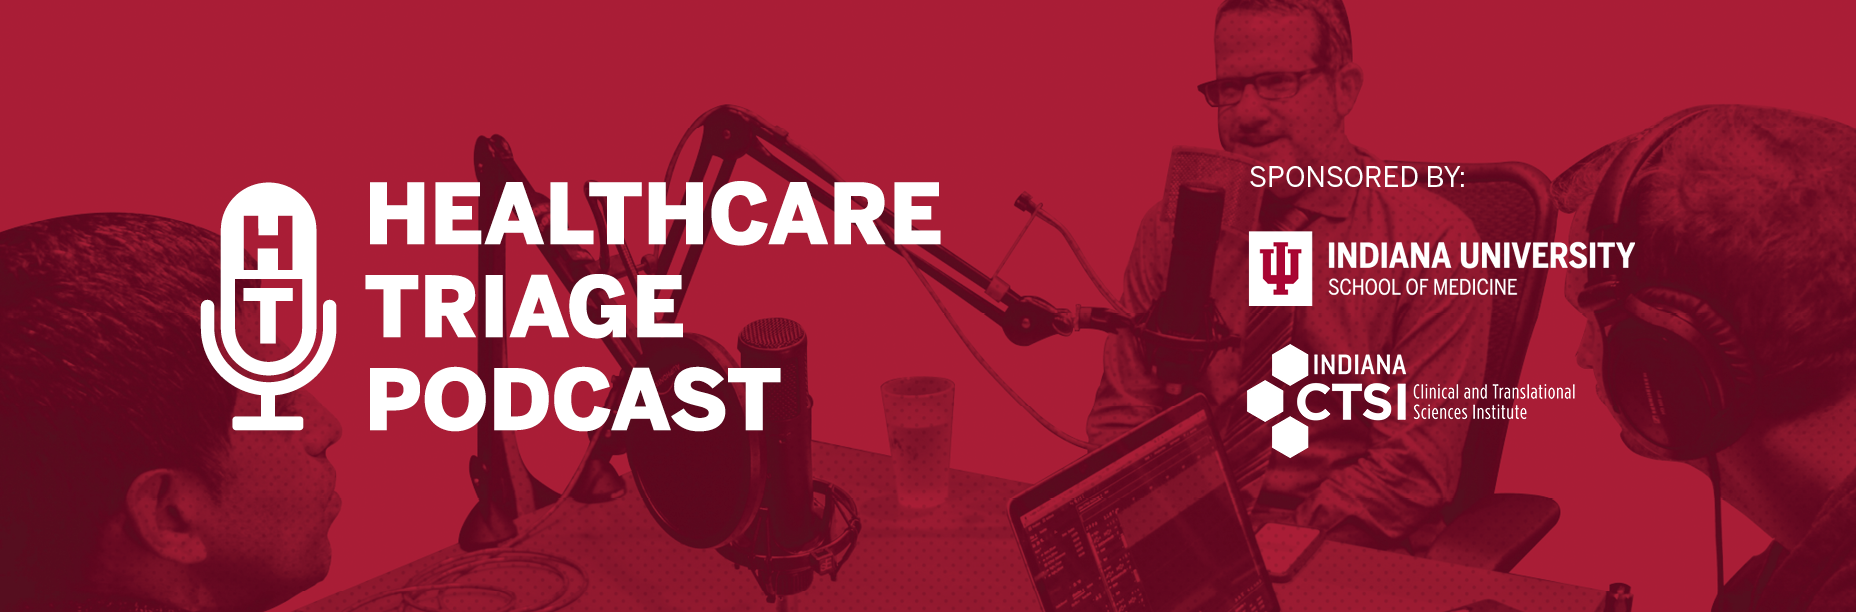 Healthcare Triage Podcast graphic